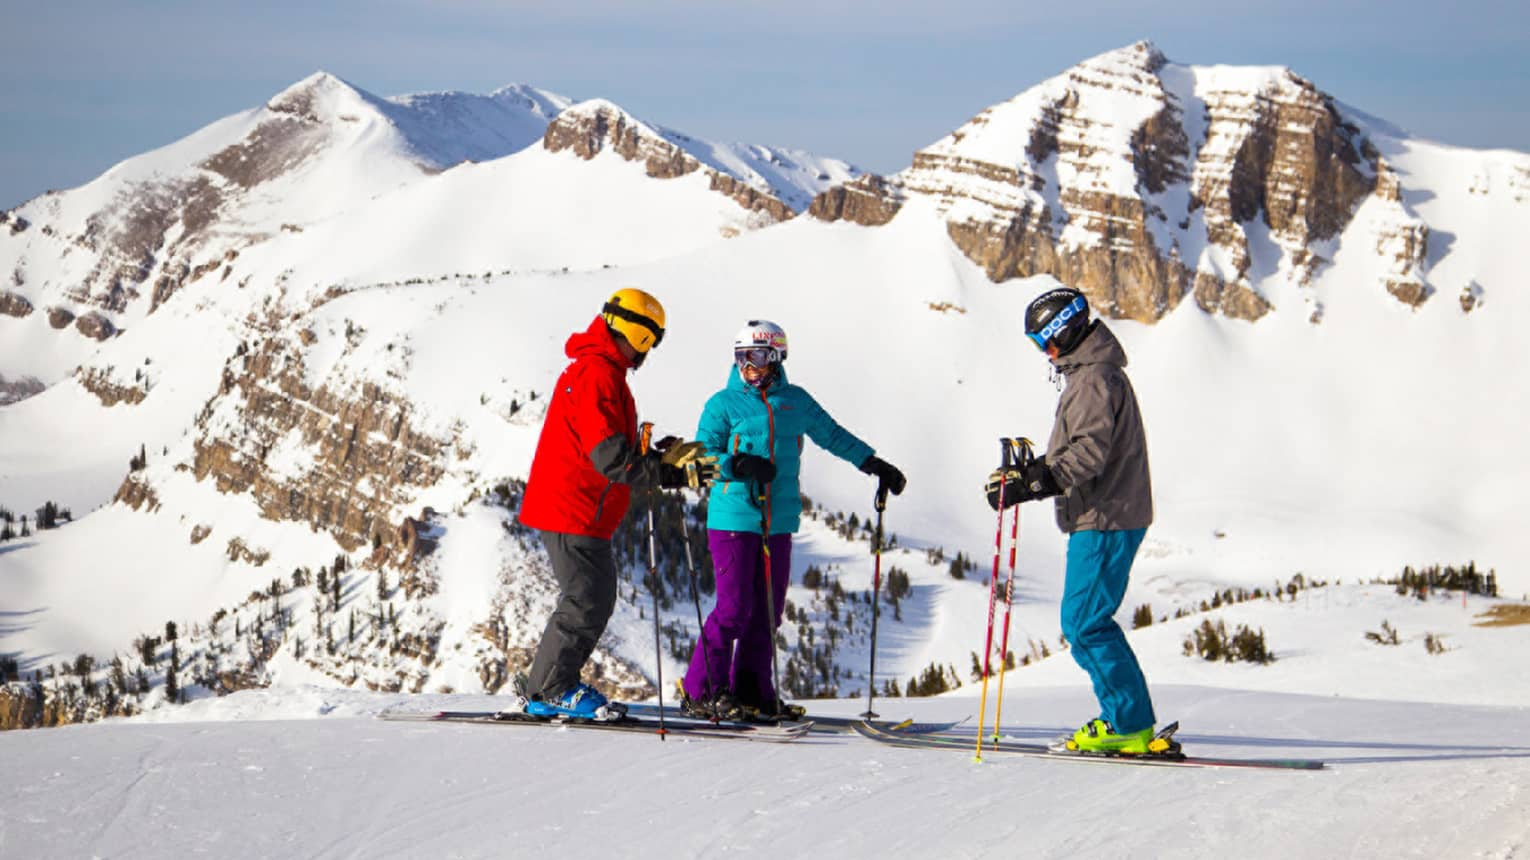 Three people in colourful snowsuits, helmets, skis stand on snow at top of slope on mountain